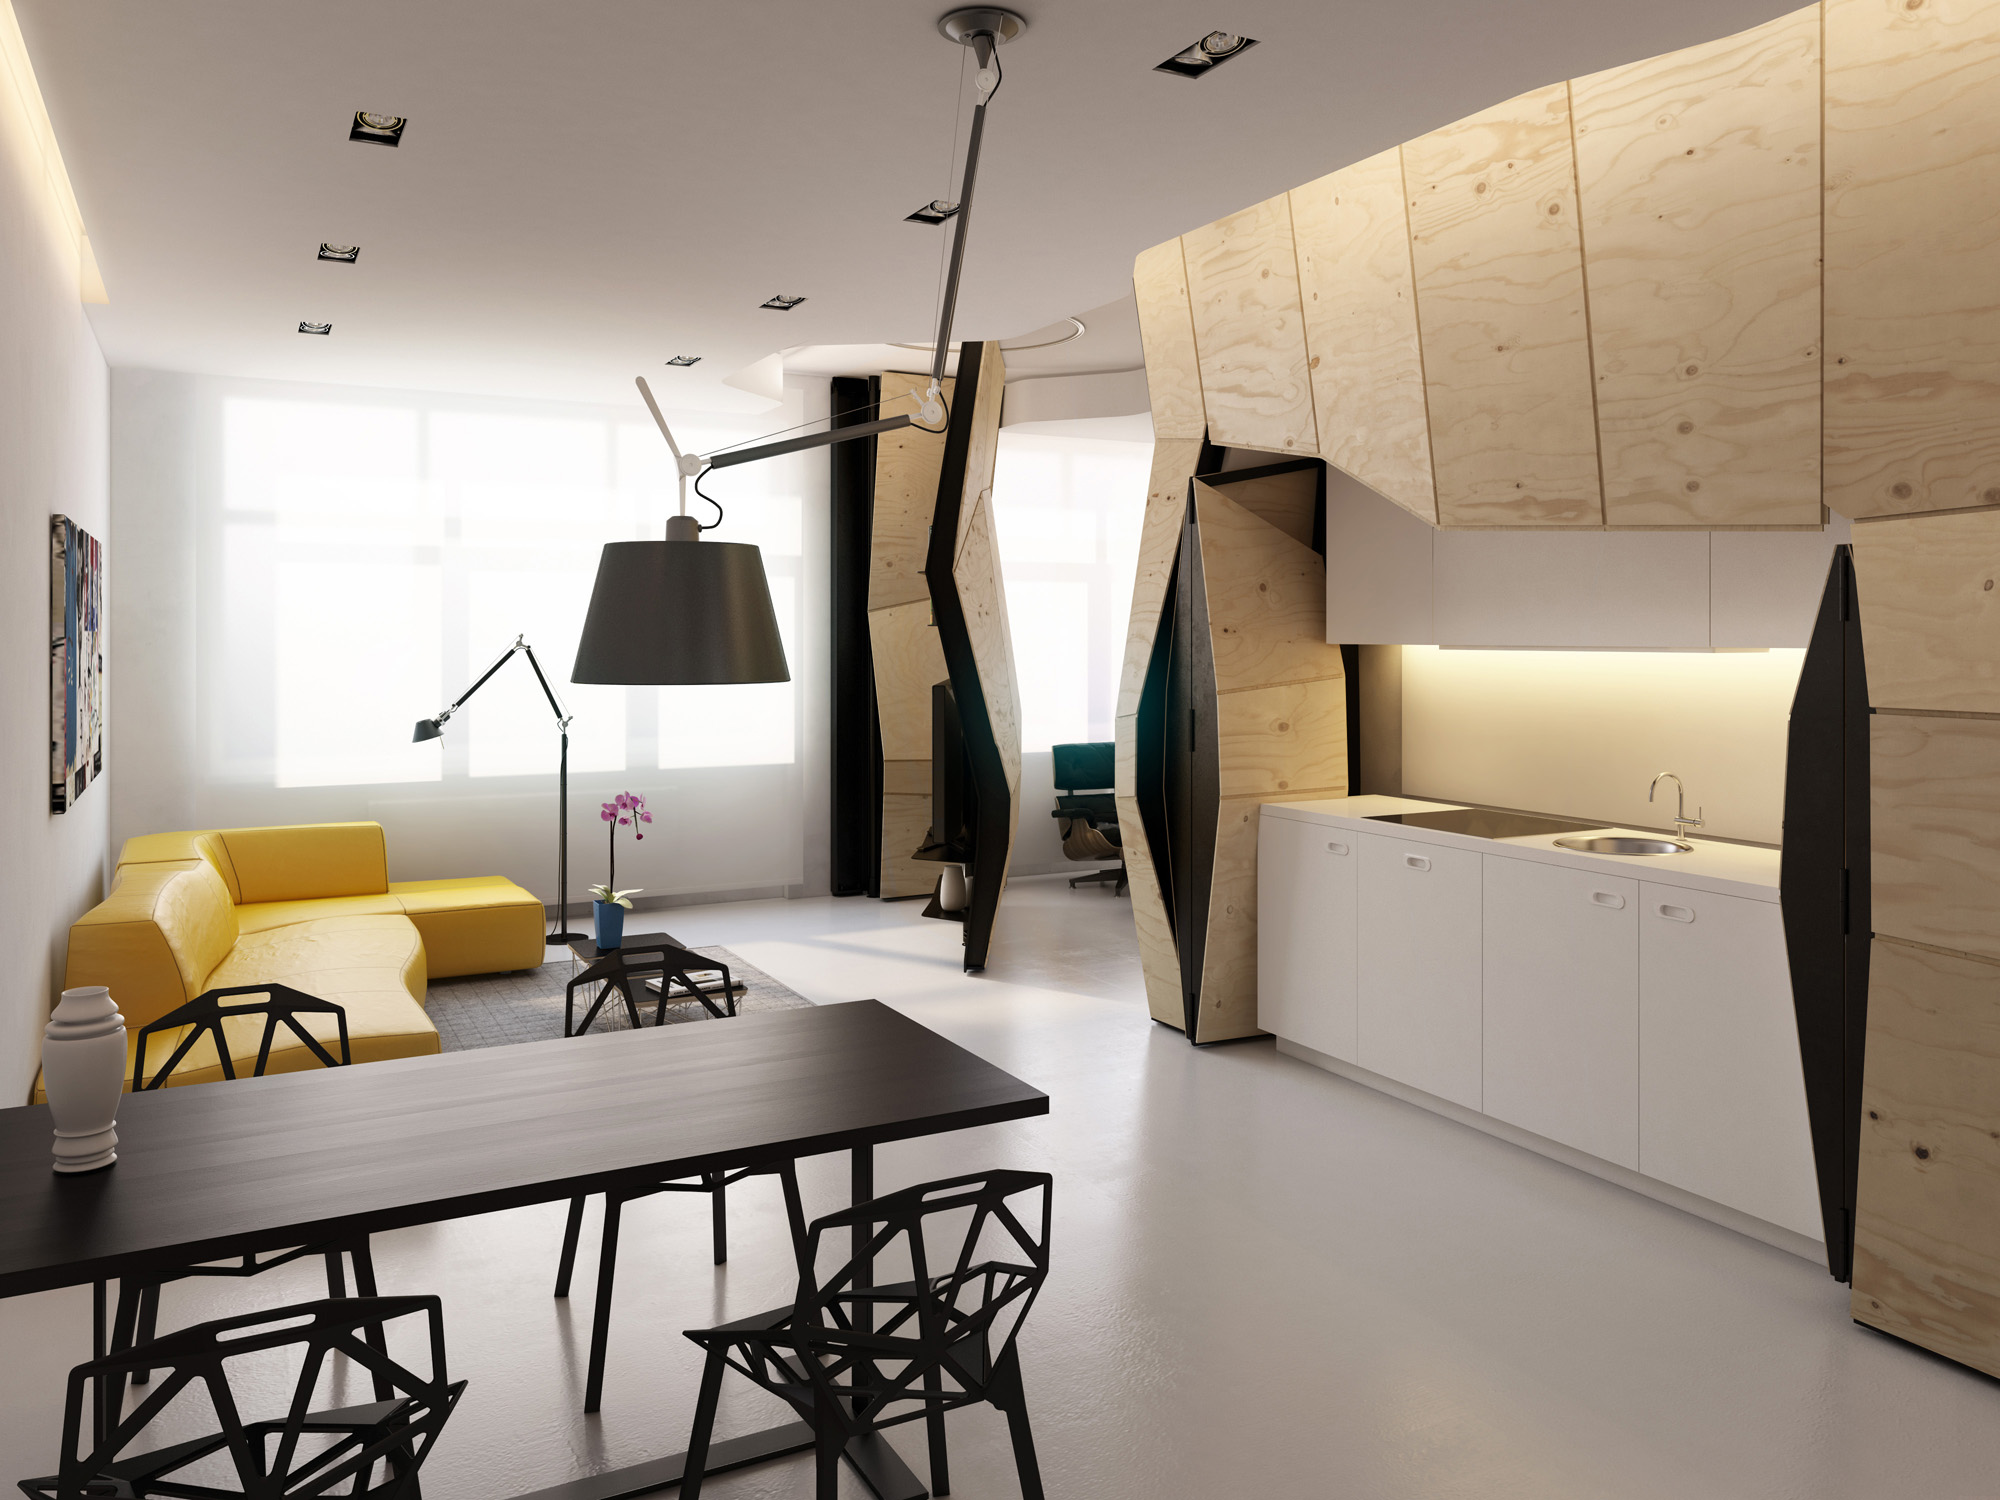 A small apartment with a smooth gray floor and many diagonal lines: black chairs with polygon shapes, wooden cabinets at odd angles, and a yellow leather living room sofa with an oblique joint standing lamp.